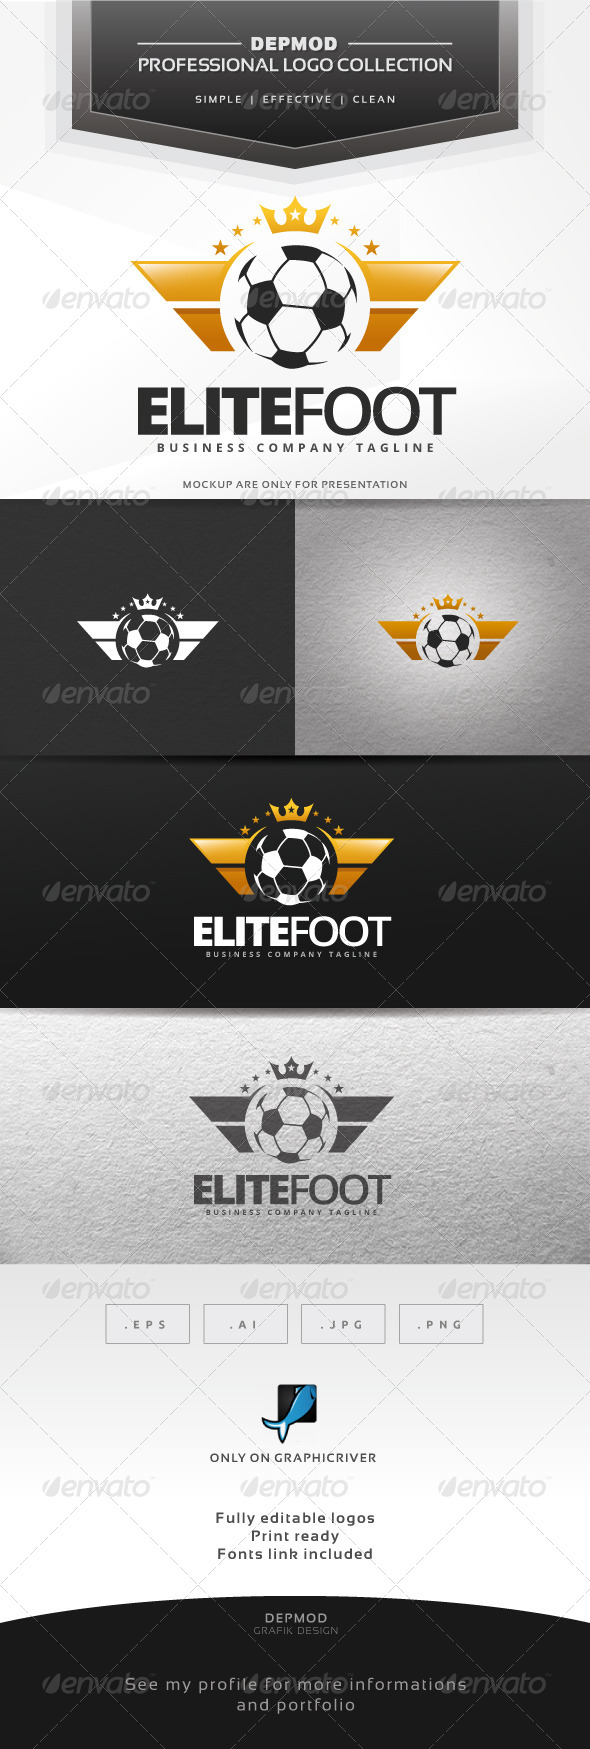 GraphicRiver Elite Foot Logo 7067279